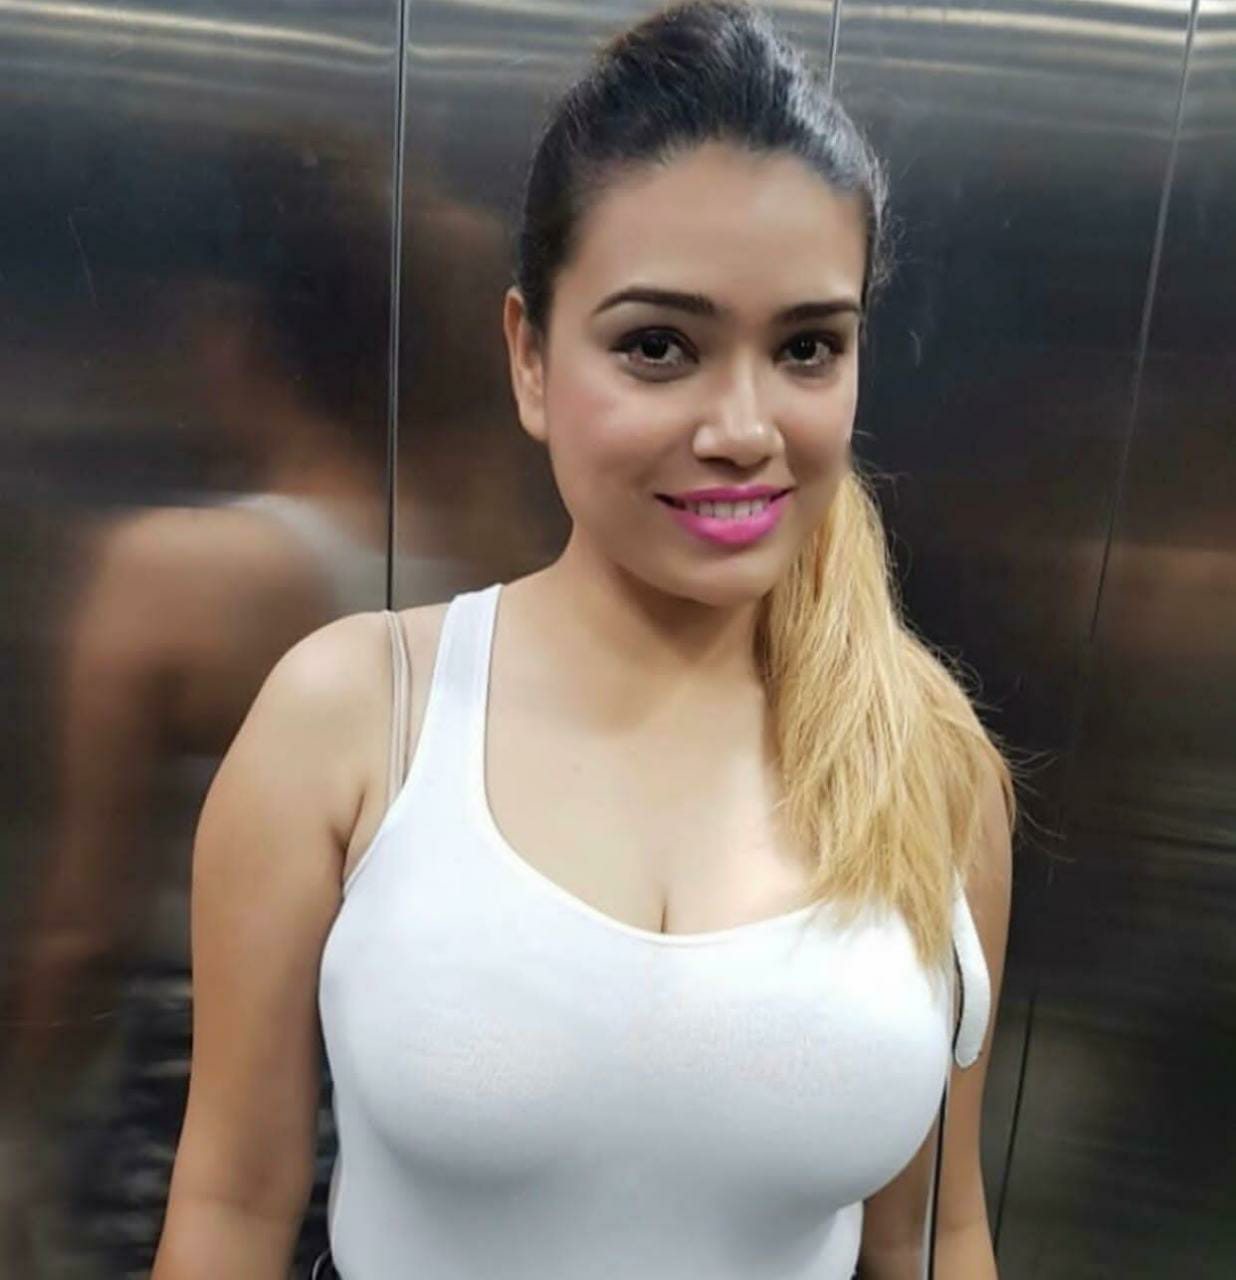 Hot Indian Girls in adelaide